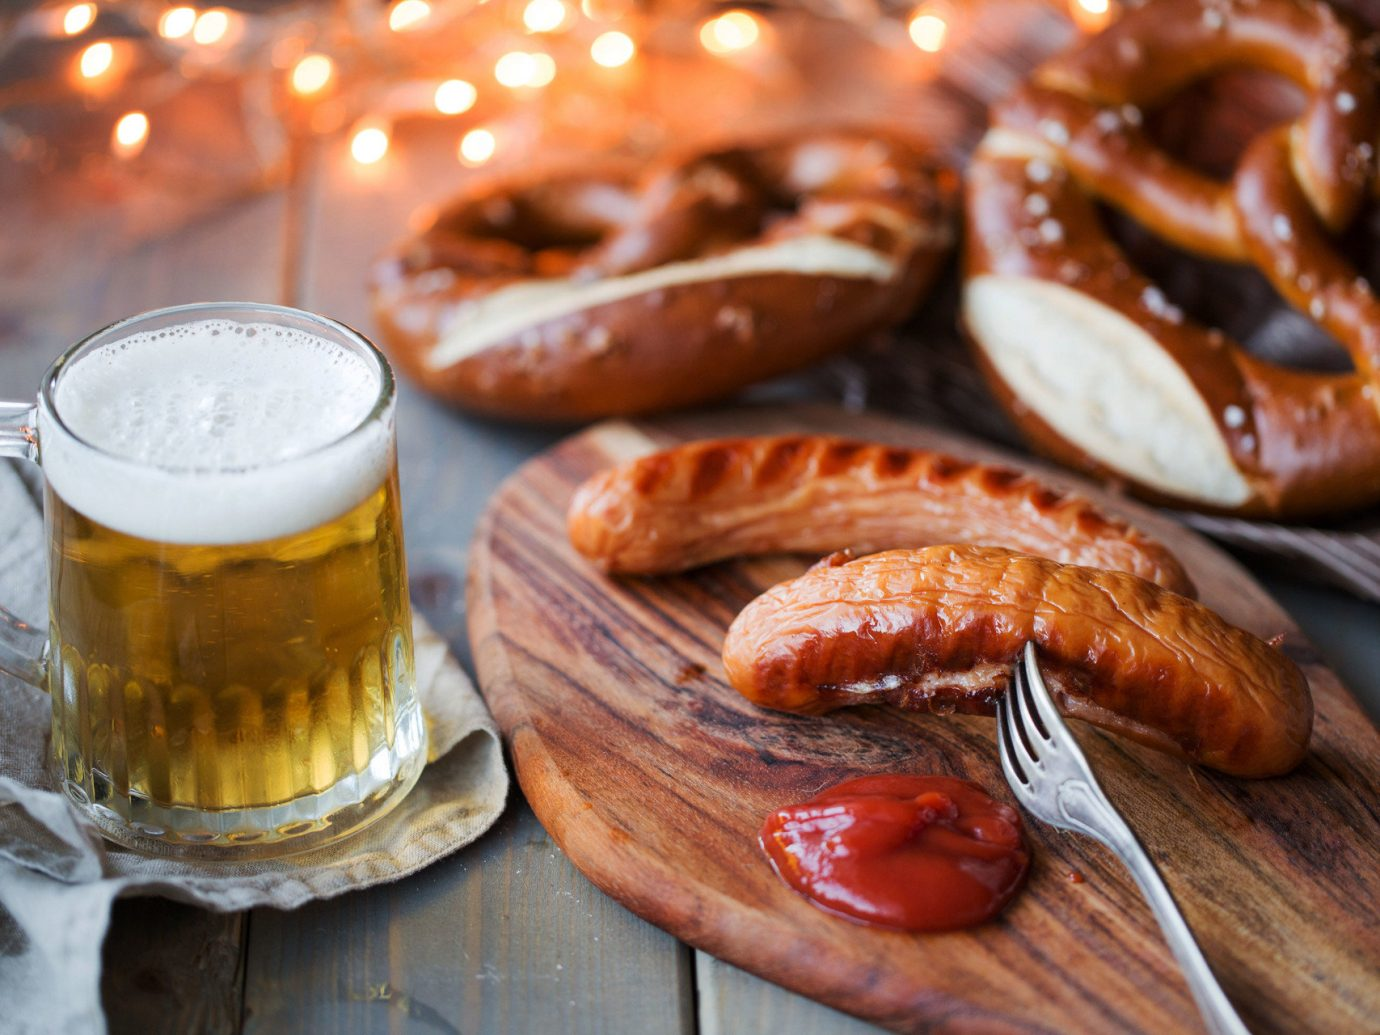 Arts + Culture Fall Travel Festivals + Events Offbeat oktoberfest Travel Tips table cup food meal produce dish breakfast wooden cuisine baking vegetable meat snack food flowering plant flavor